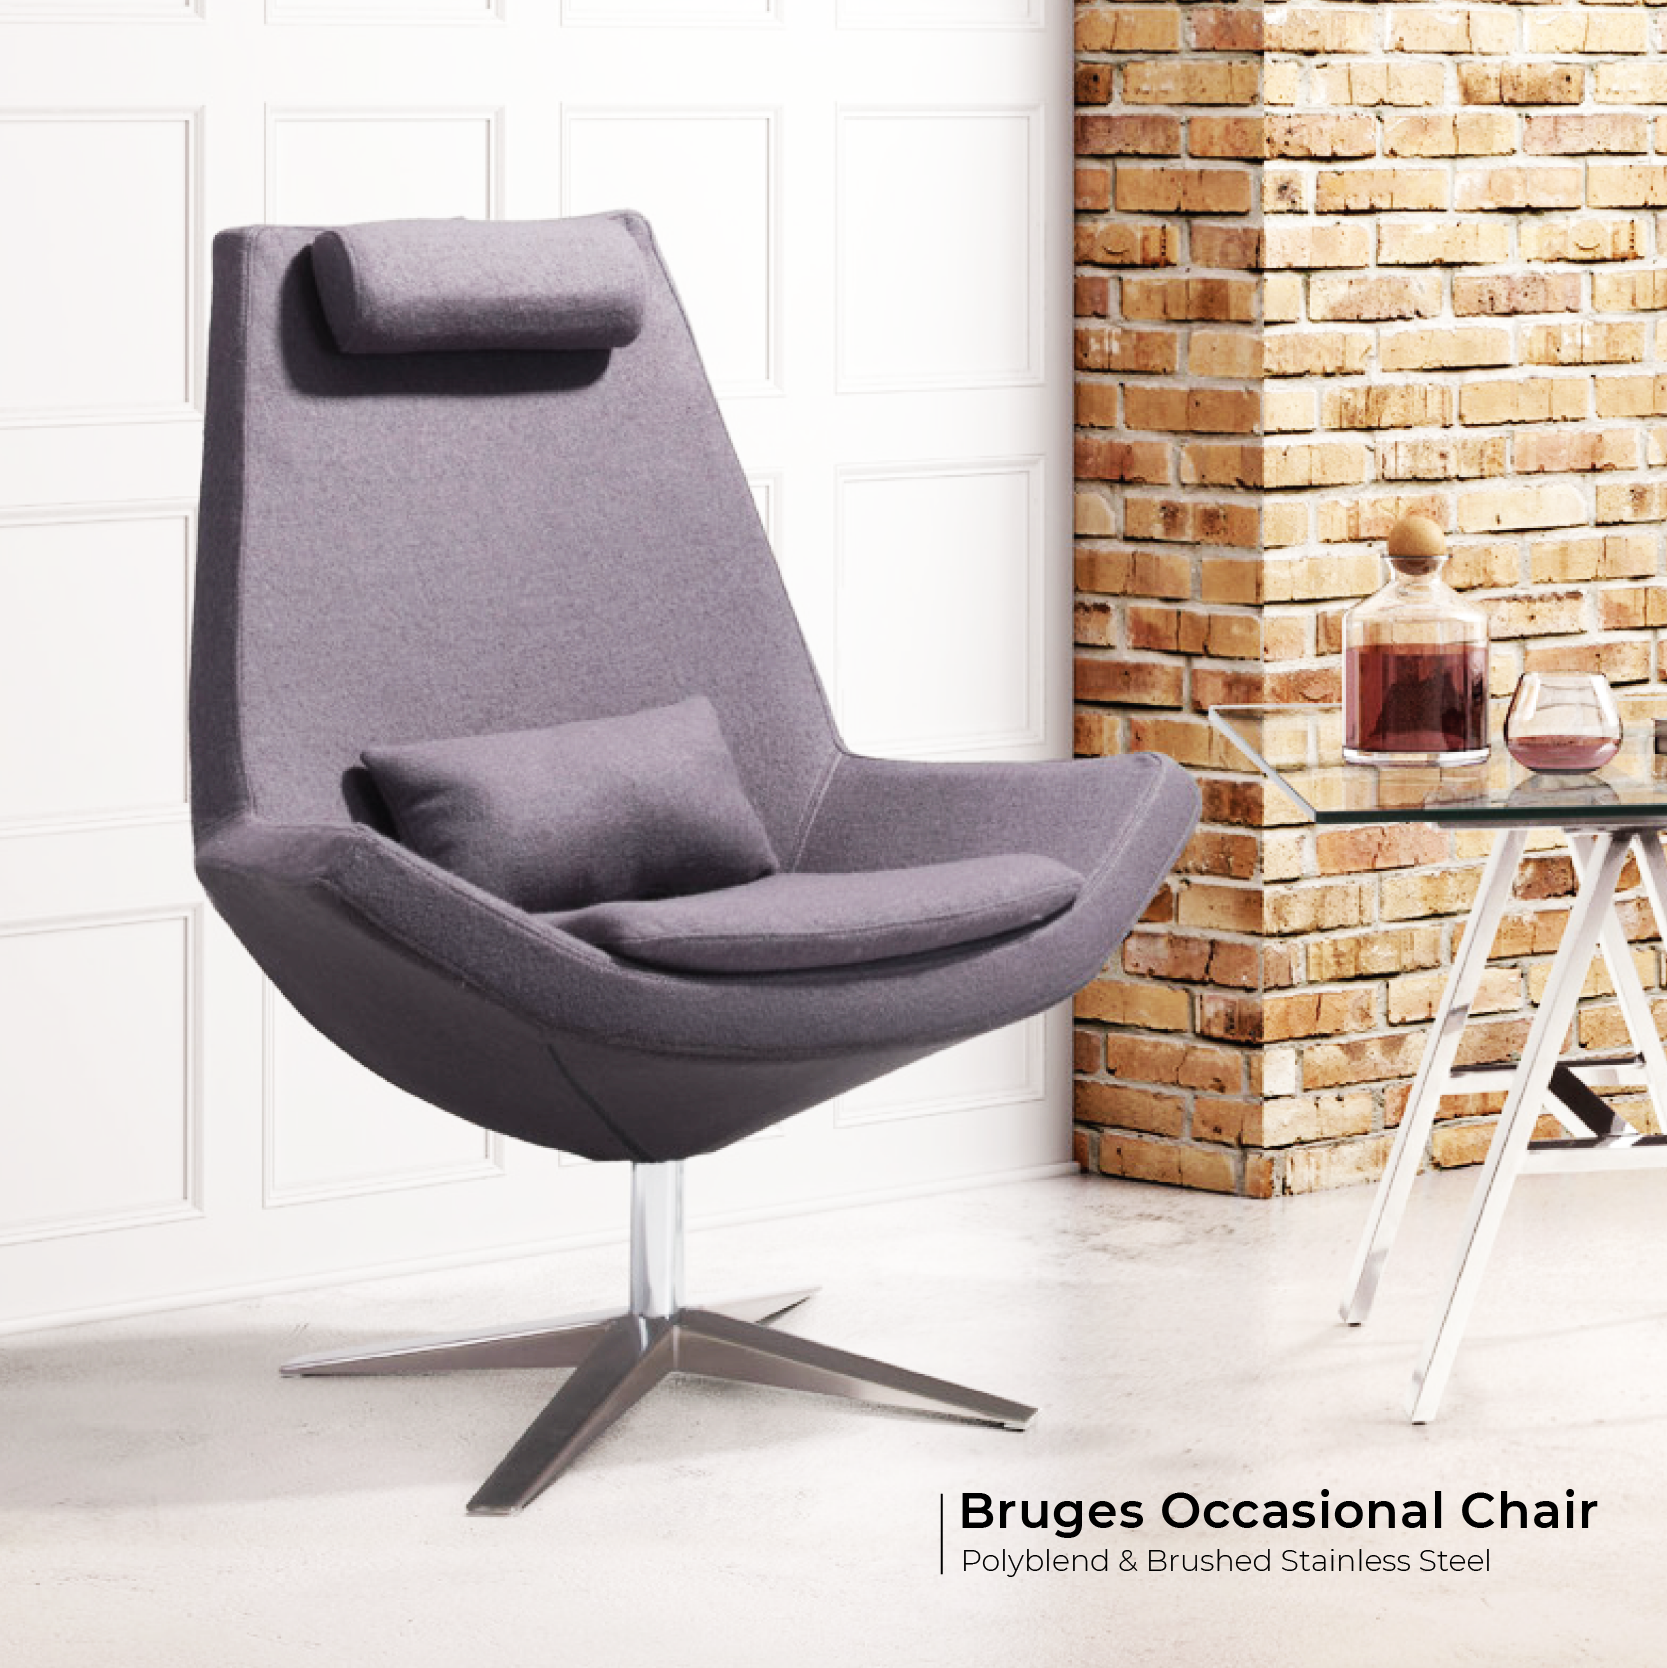 Bruges Occasional Chair Charcoal Gray Occasional Chairs Outdoor